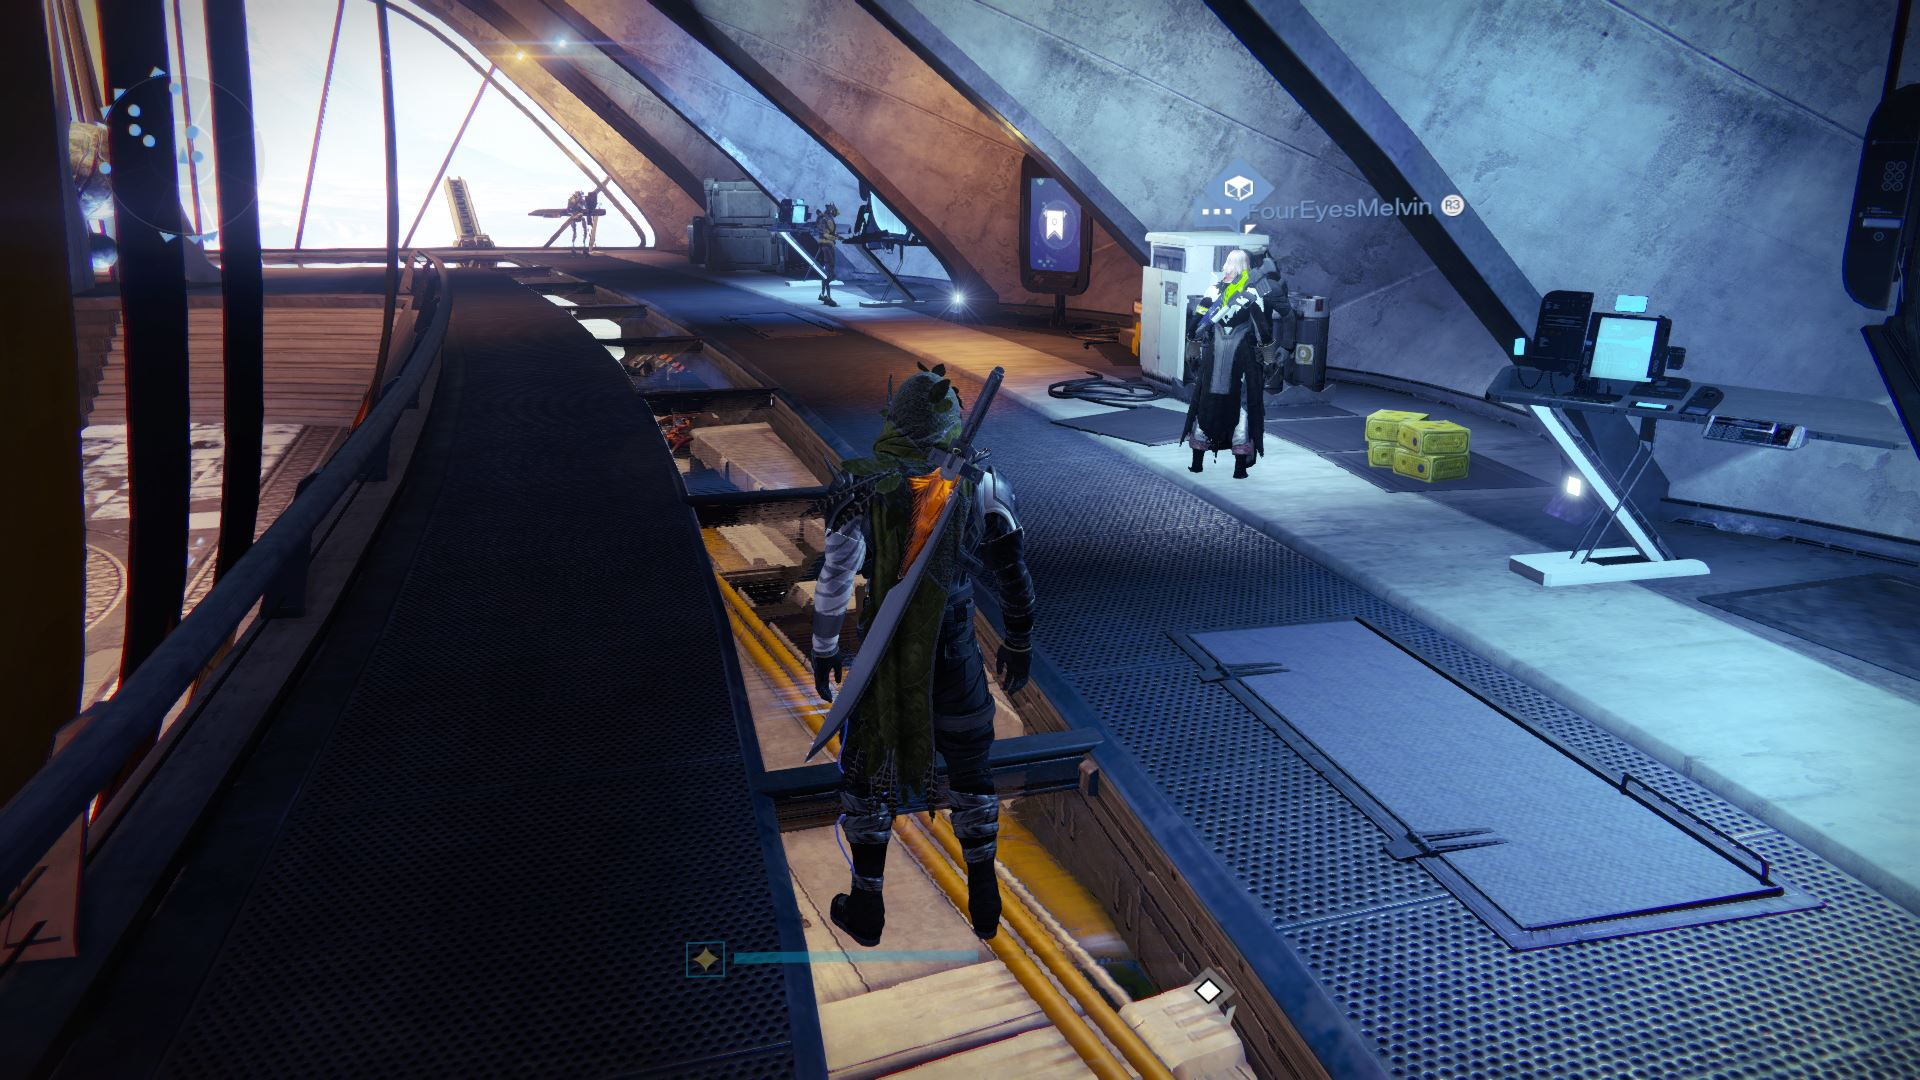 For this week, Xur – Agent of the Nine can be found near the Vanguards and Exotic Blueprints.